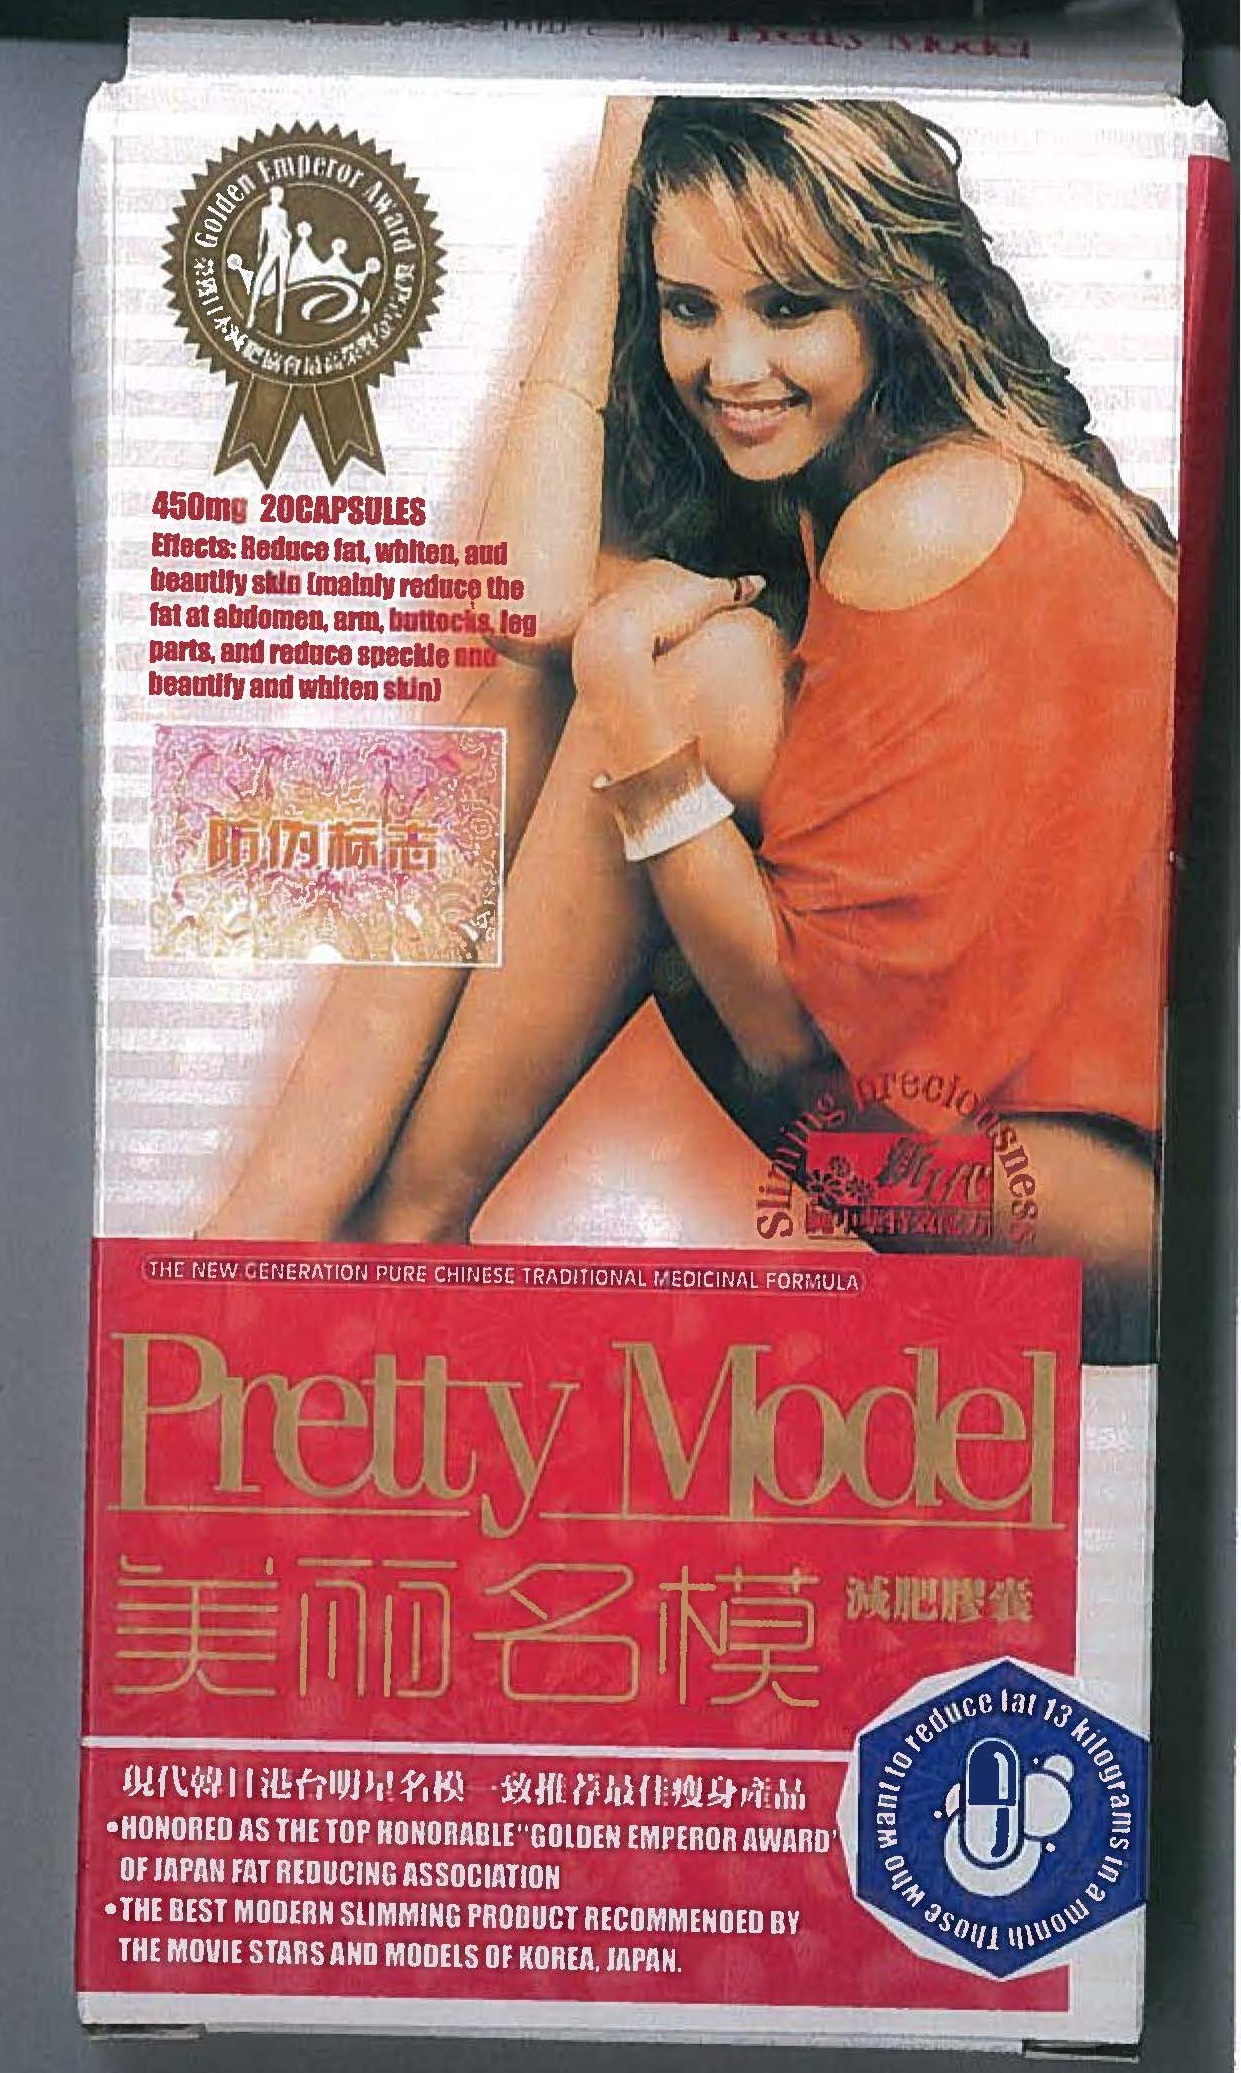 Image of the illigal product: Pretty Model